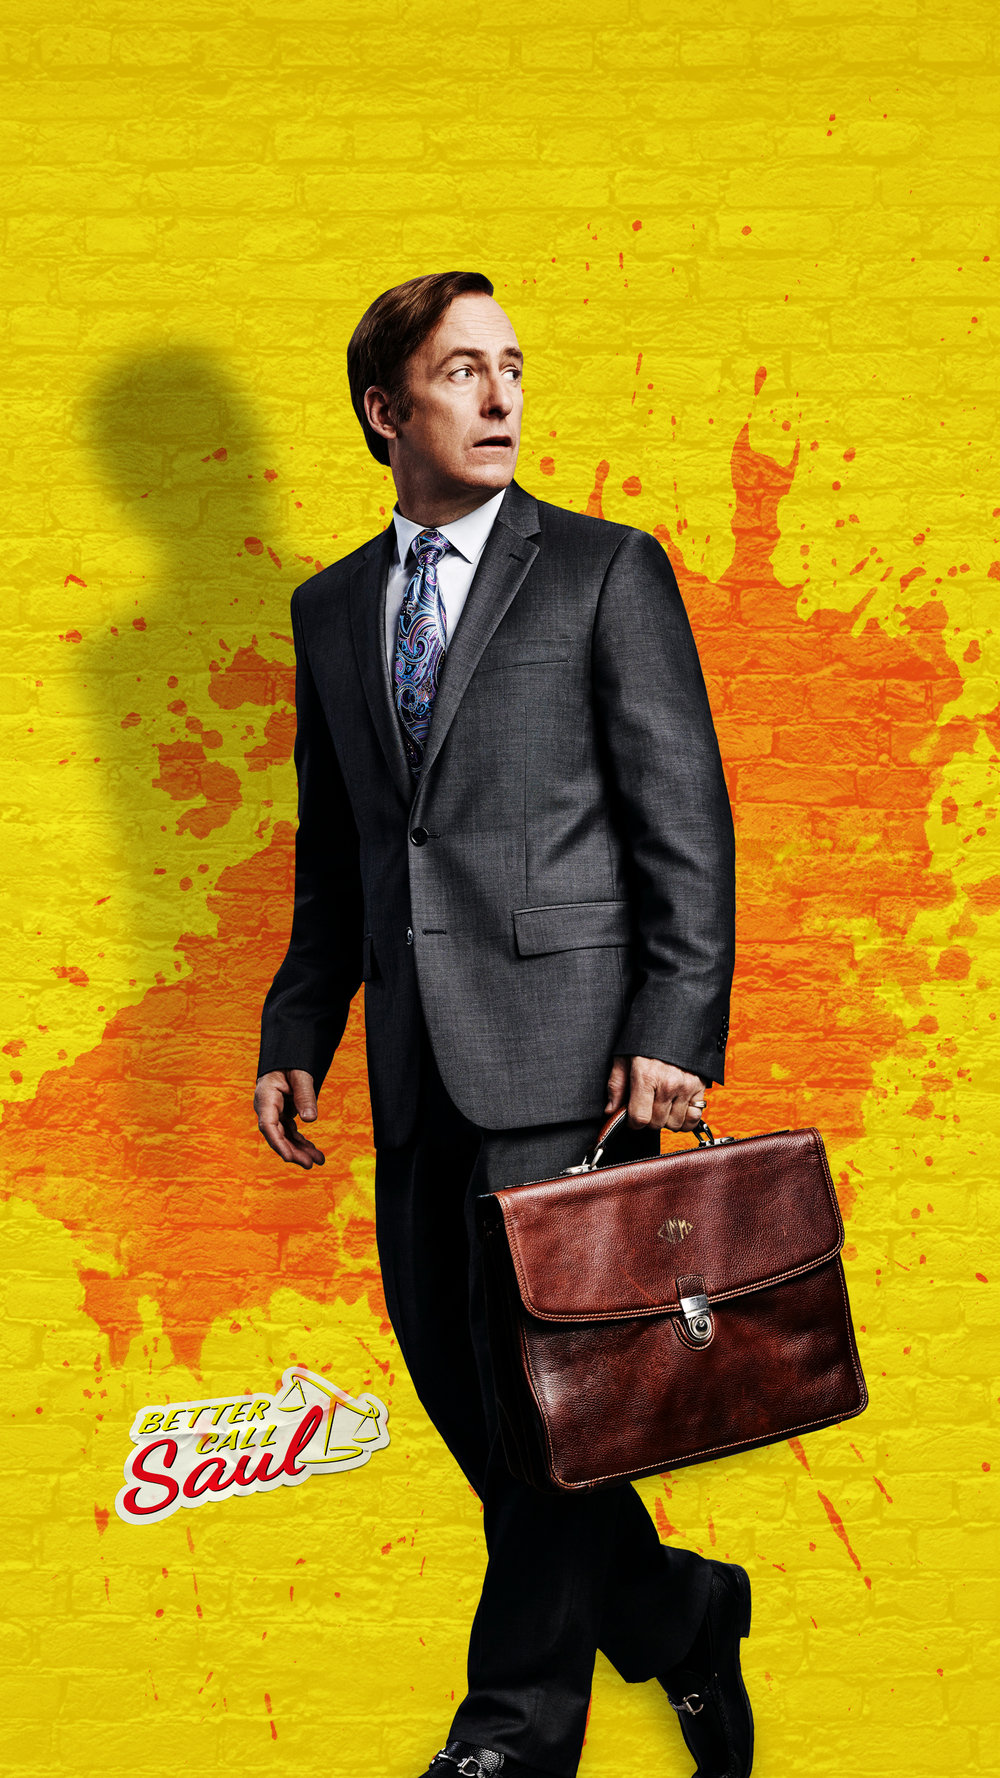 BetterCallSaul_Zedge_2250x4000_12_v2.jpg